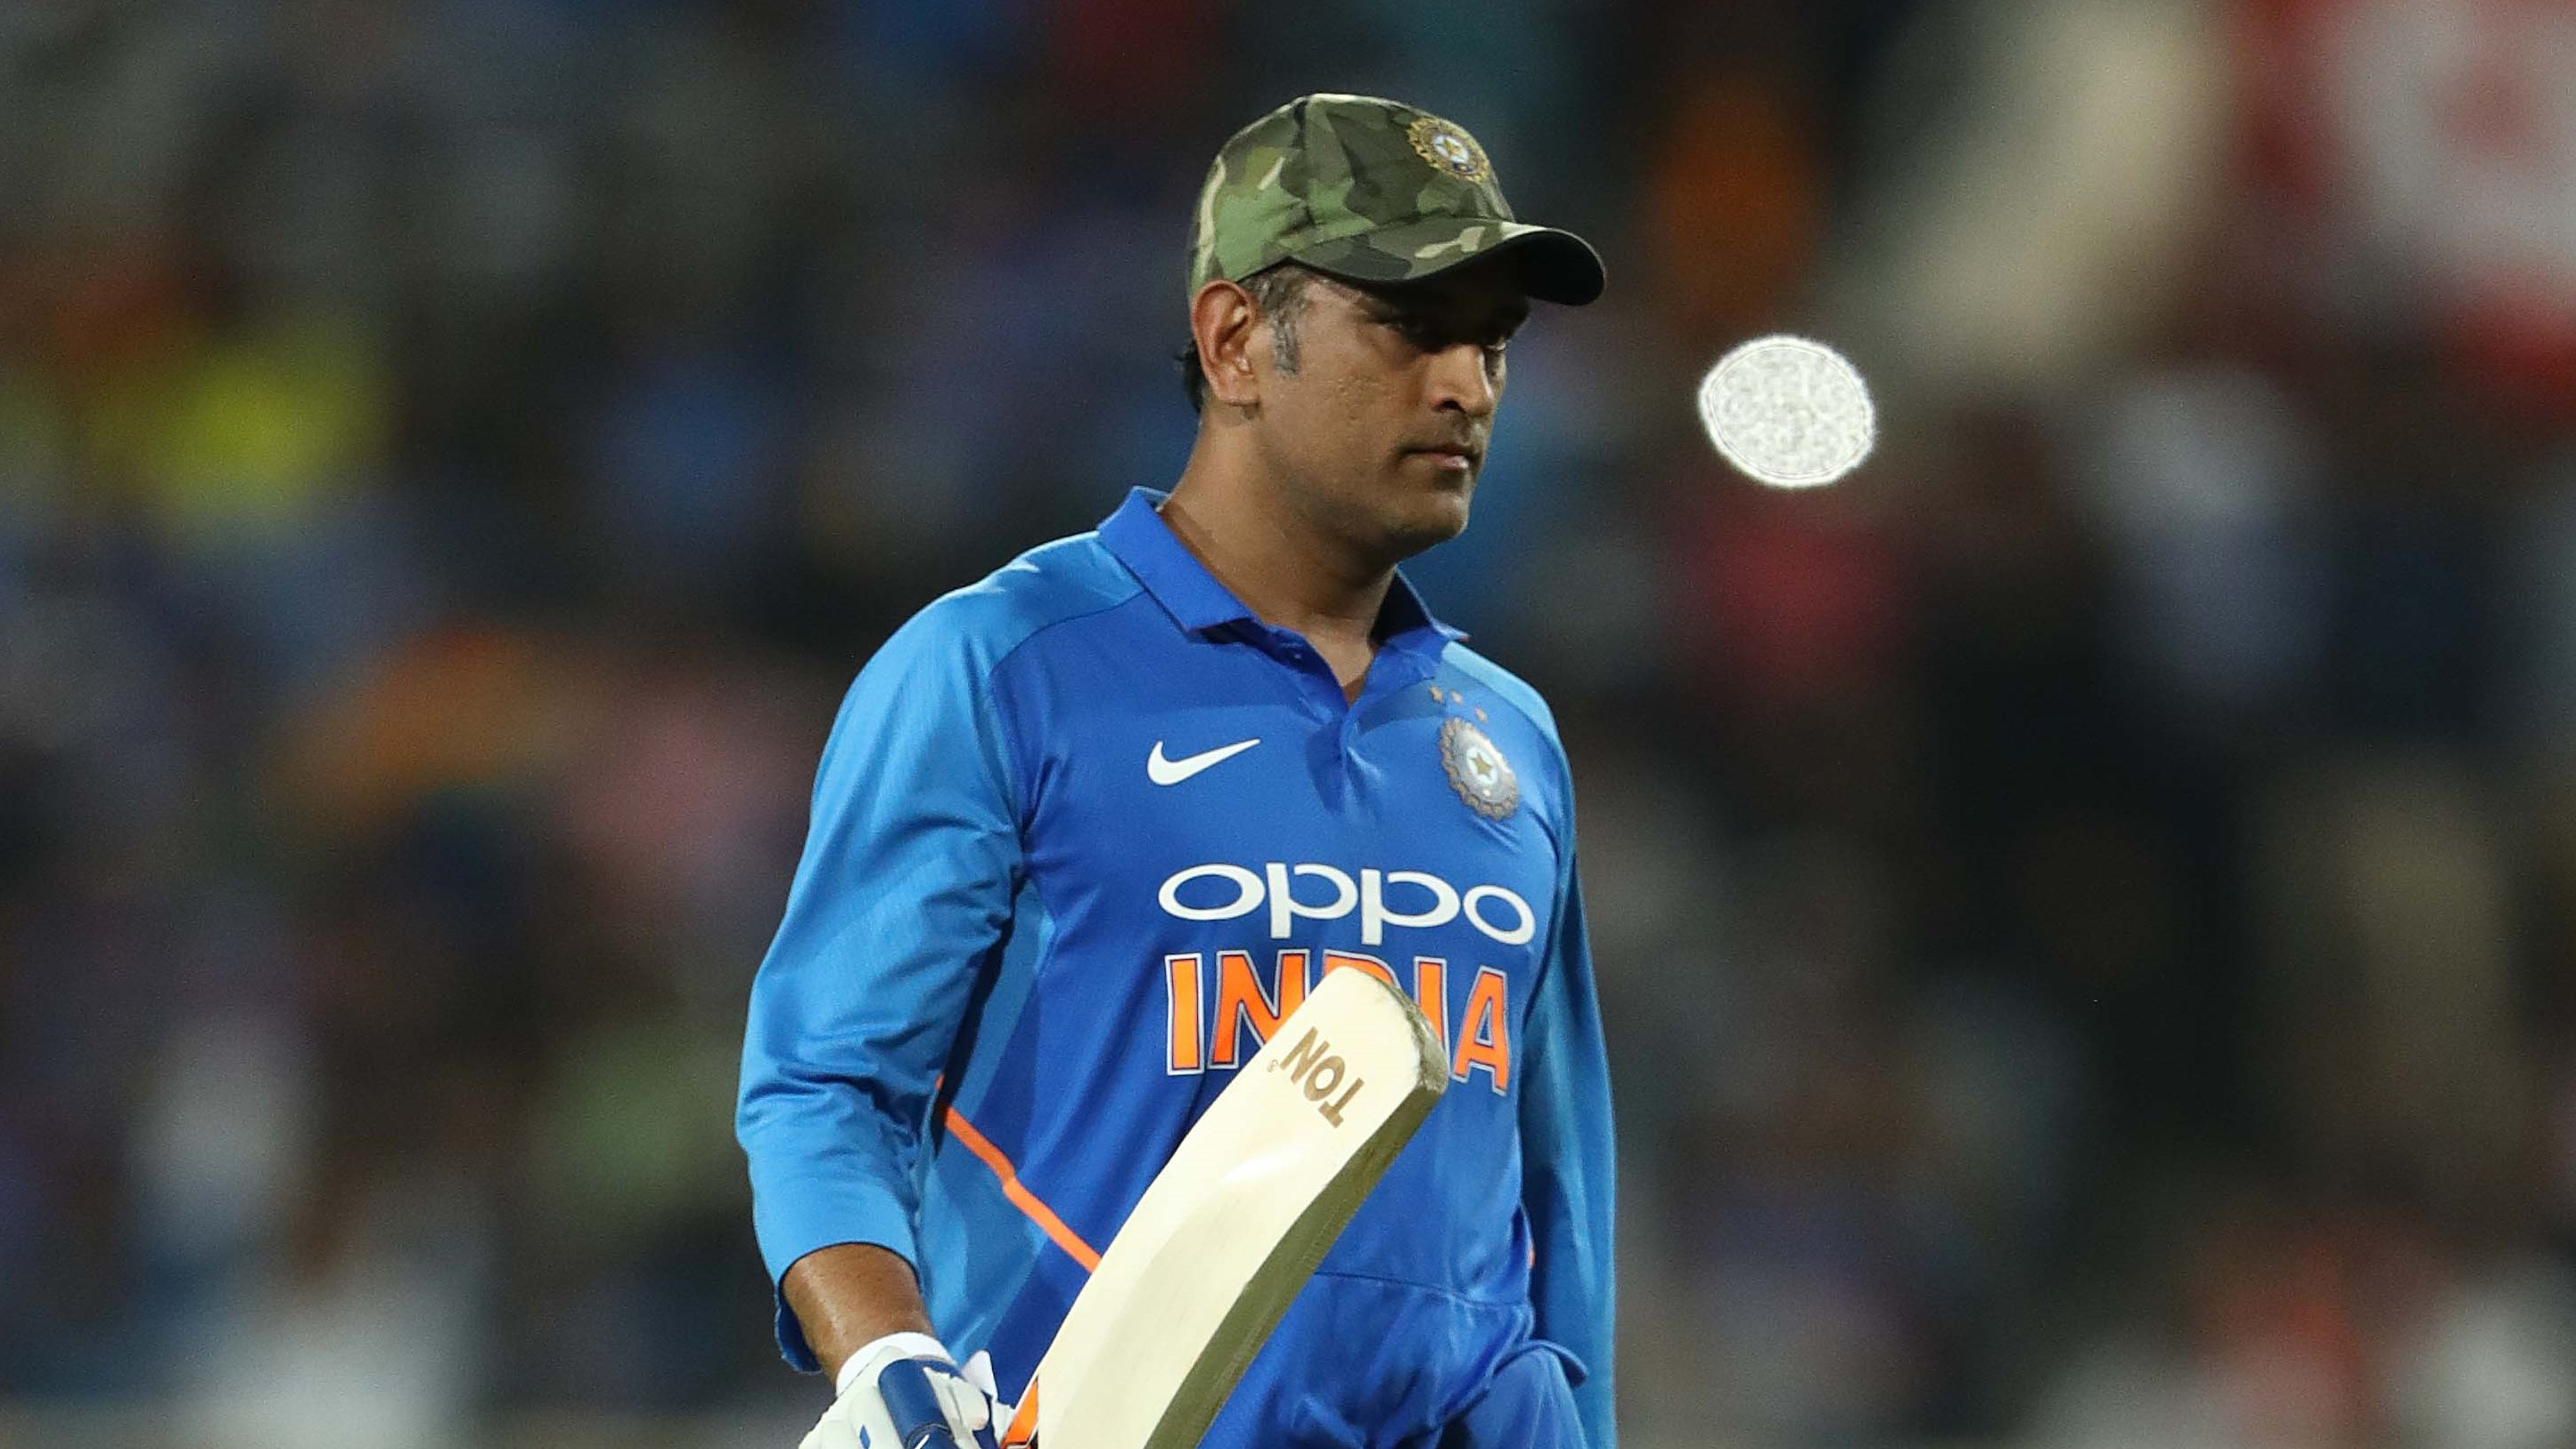 MS Dhoni to be rested for final two Australia ODIs